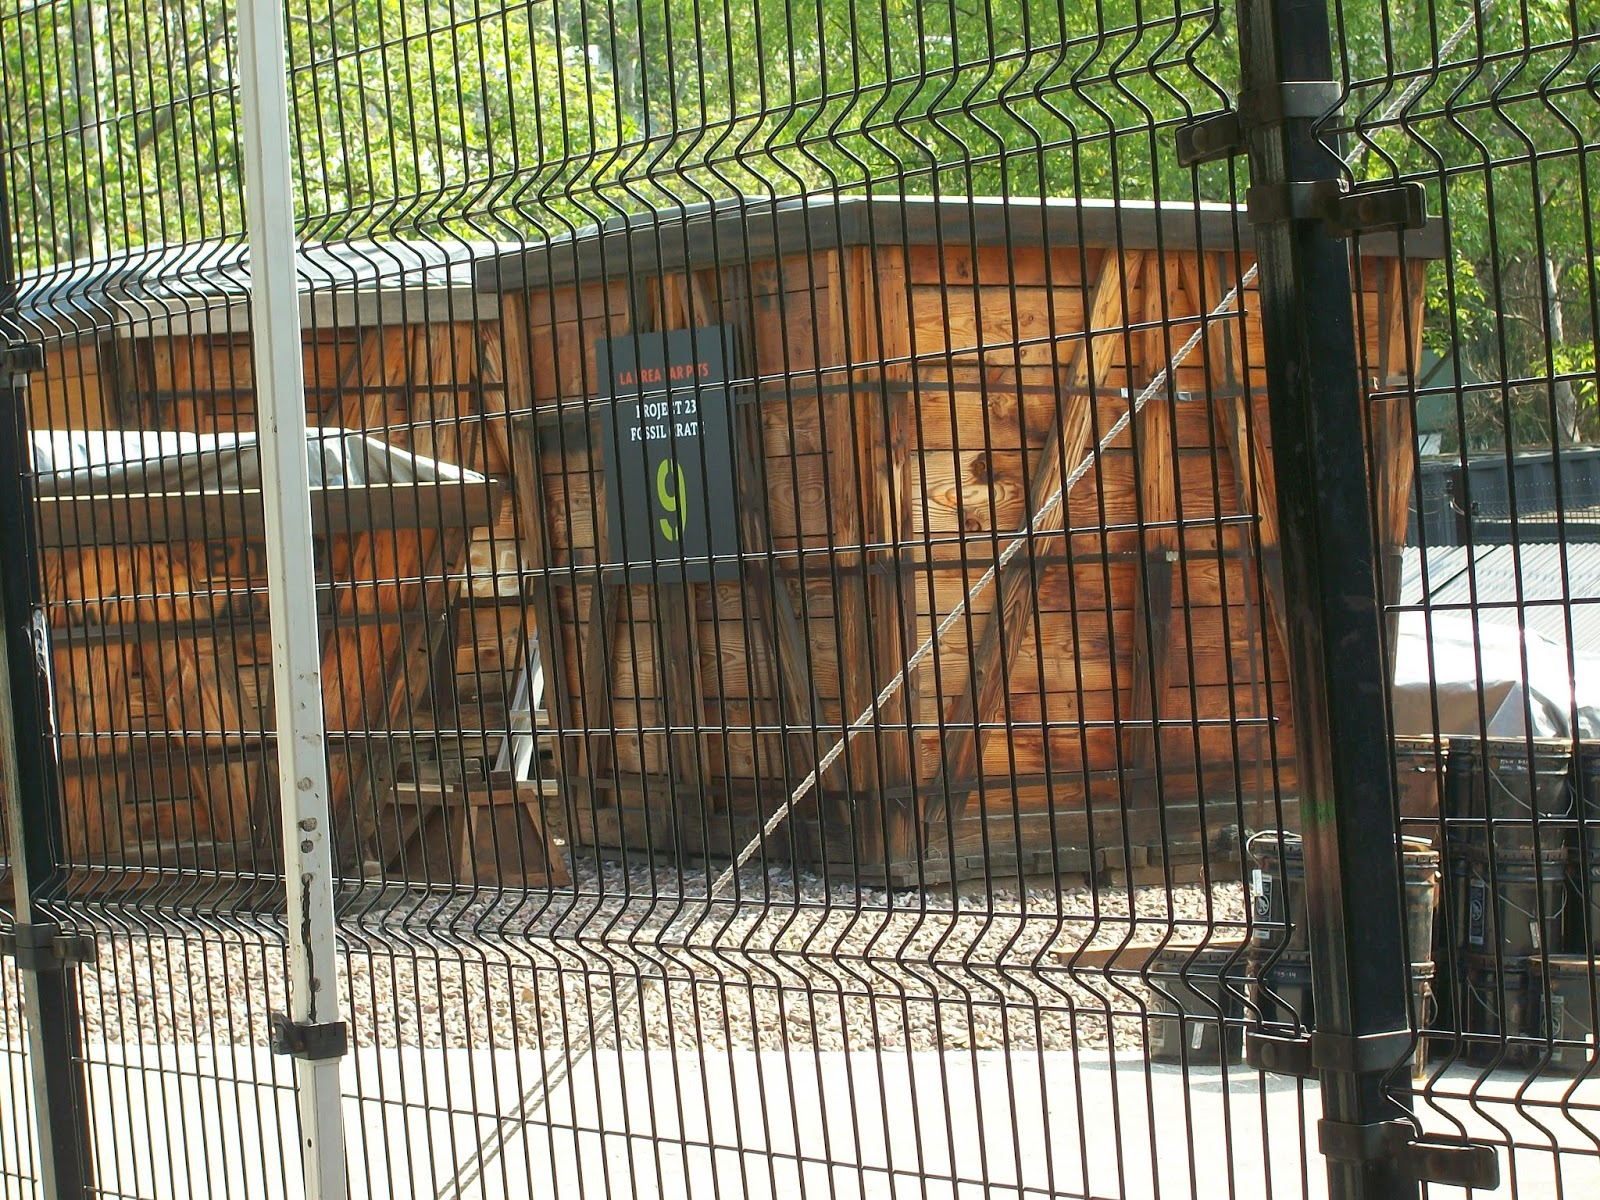 Giant tree crates hold the fossils awaiting cleaning and processing - La Brea Tar Pits and Page Museum